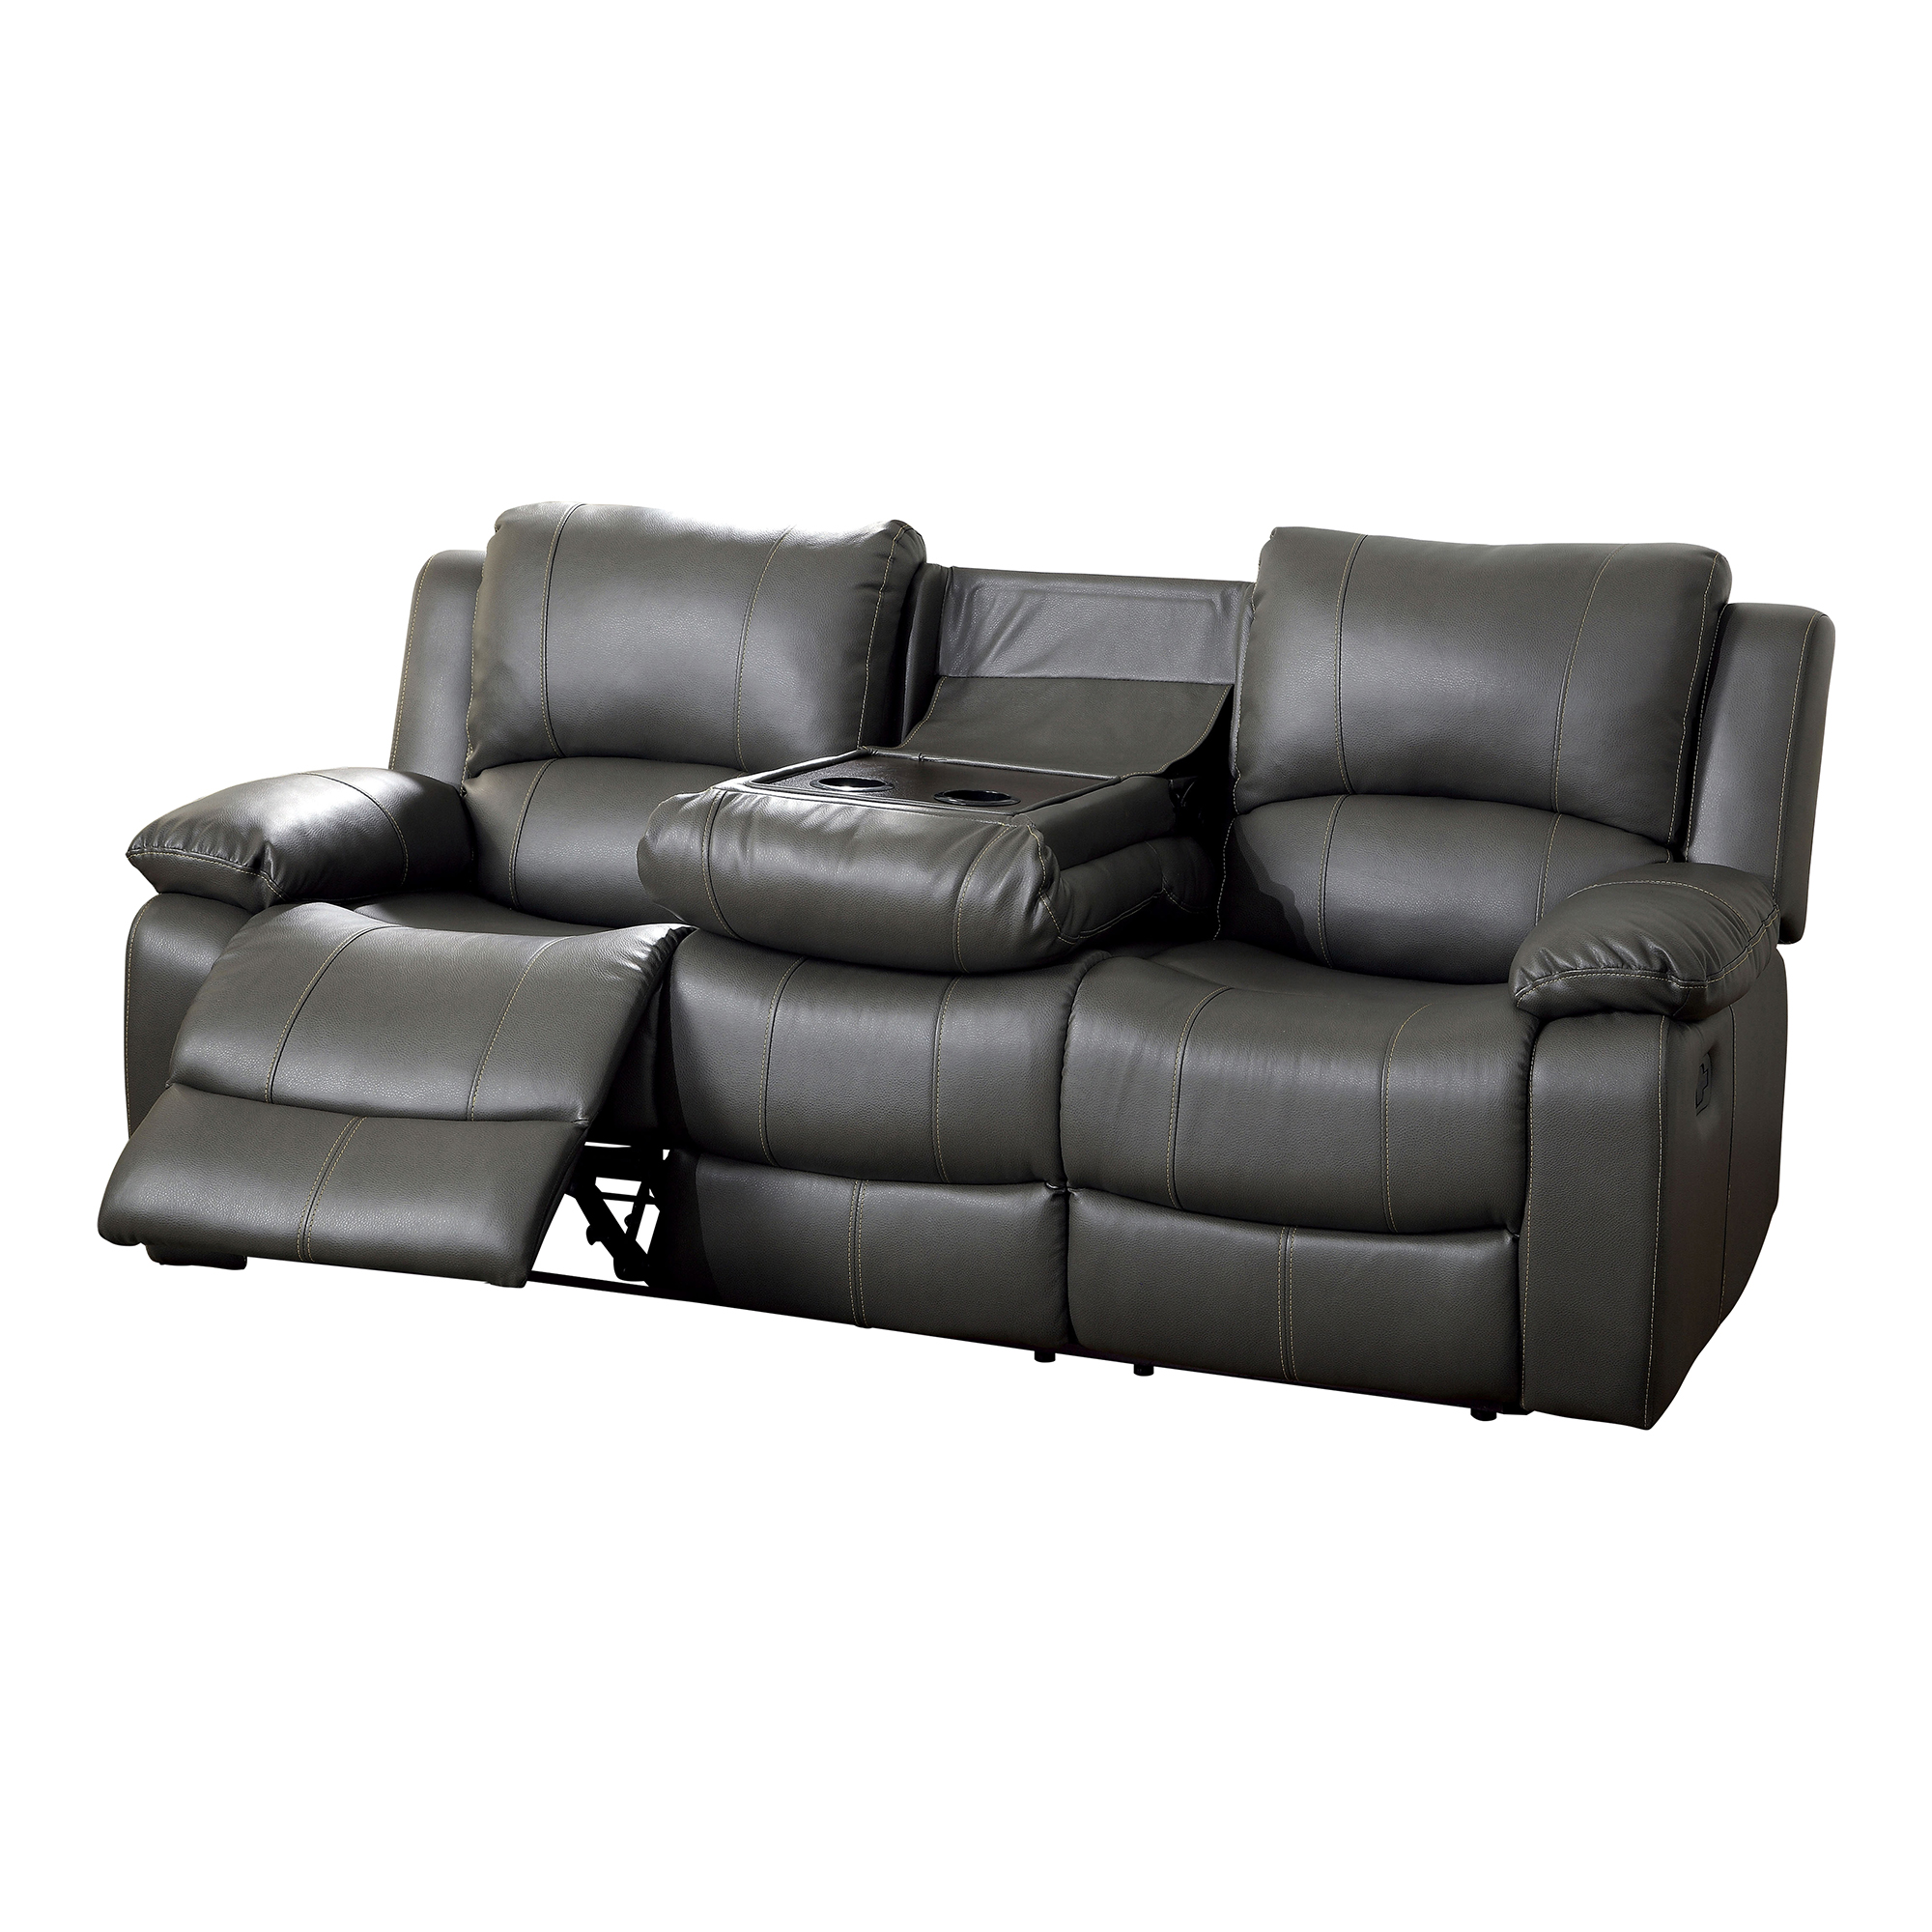 Furniture of America Rathbone Recliner Sofa with Cup  : masterENLB2071 from www.hayneedle.com size 3200 x 3200 jpeg 1195kB